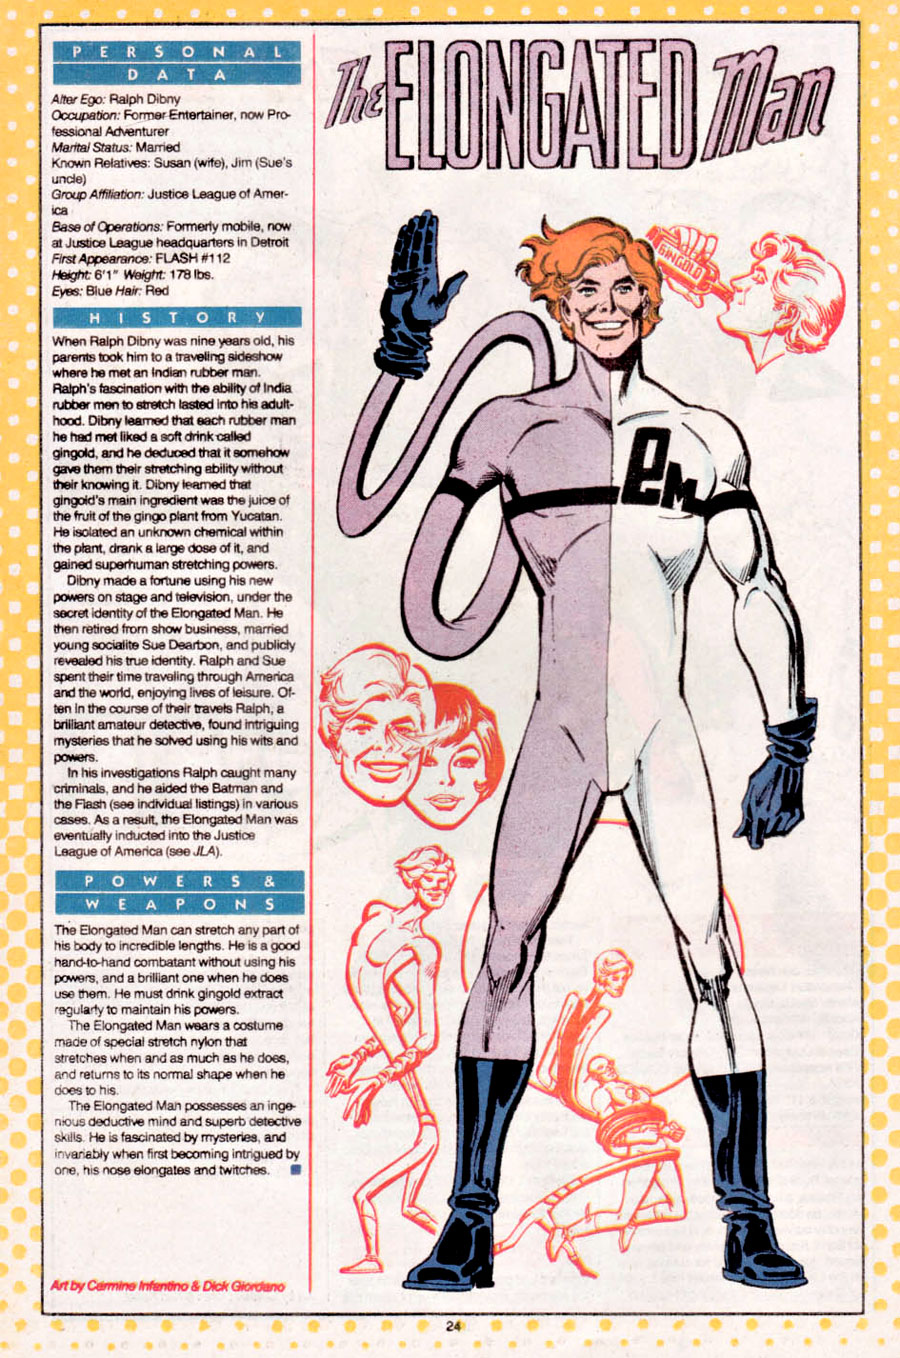 Elongated Man from Who's Who drawn by Carmine Infantino and Dick Giordano!